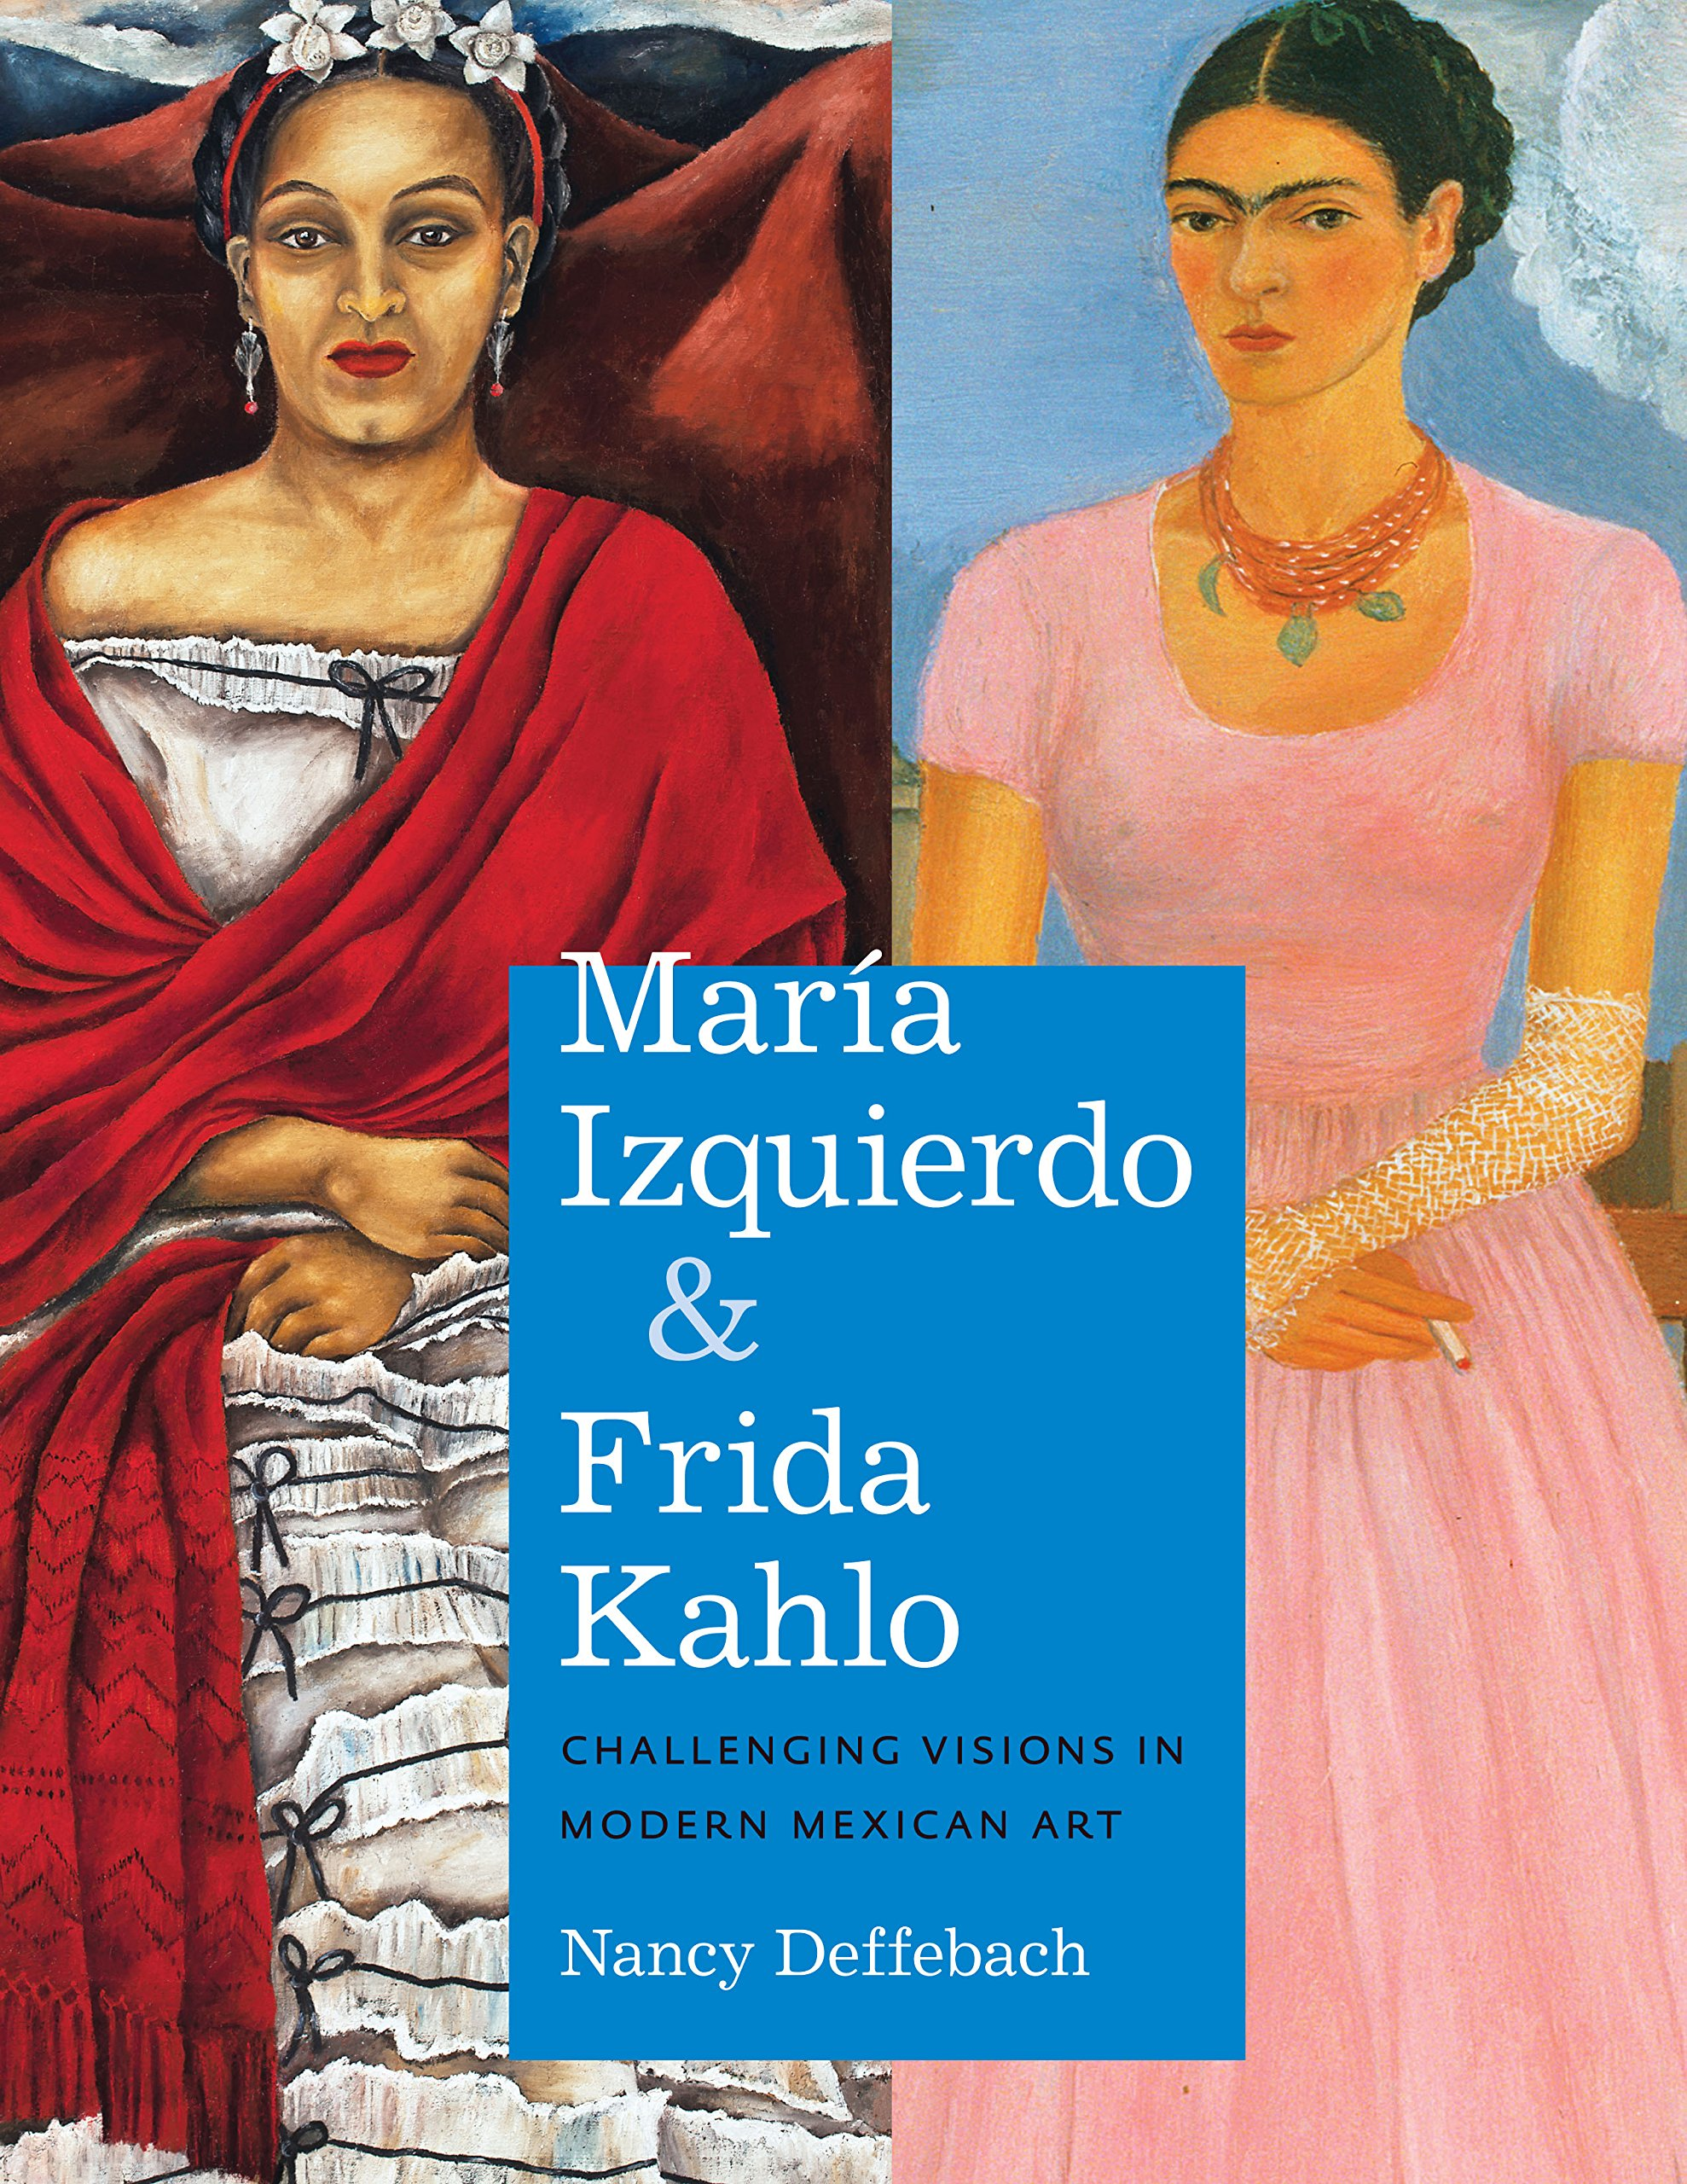 María Izquierdo and Frida Kahlo: Challenging Visions in Modern Mexican Art (Latin American and Caribbean Arts and Culture Publication In) ebook